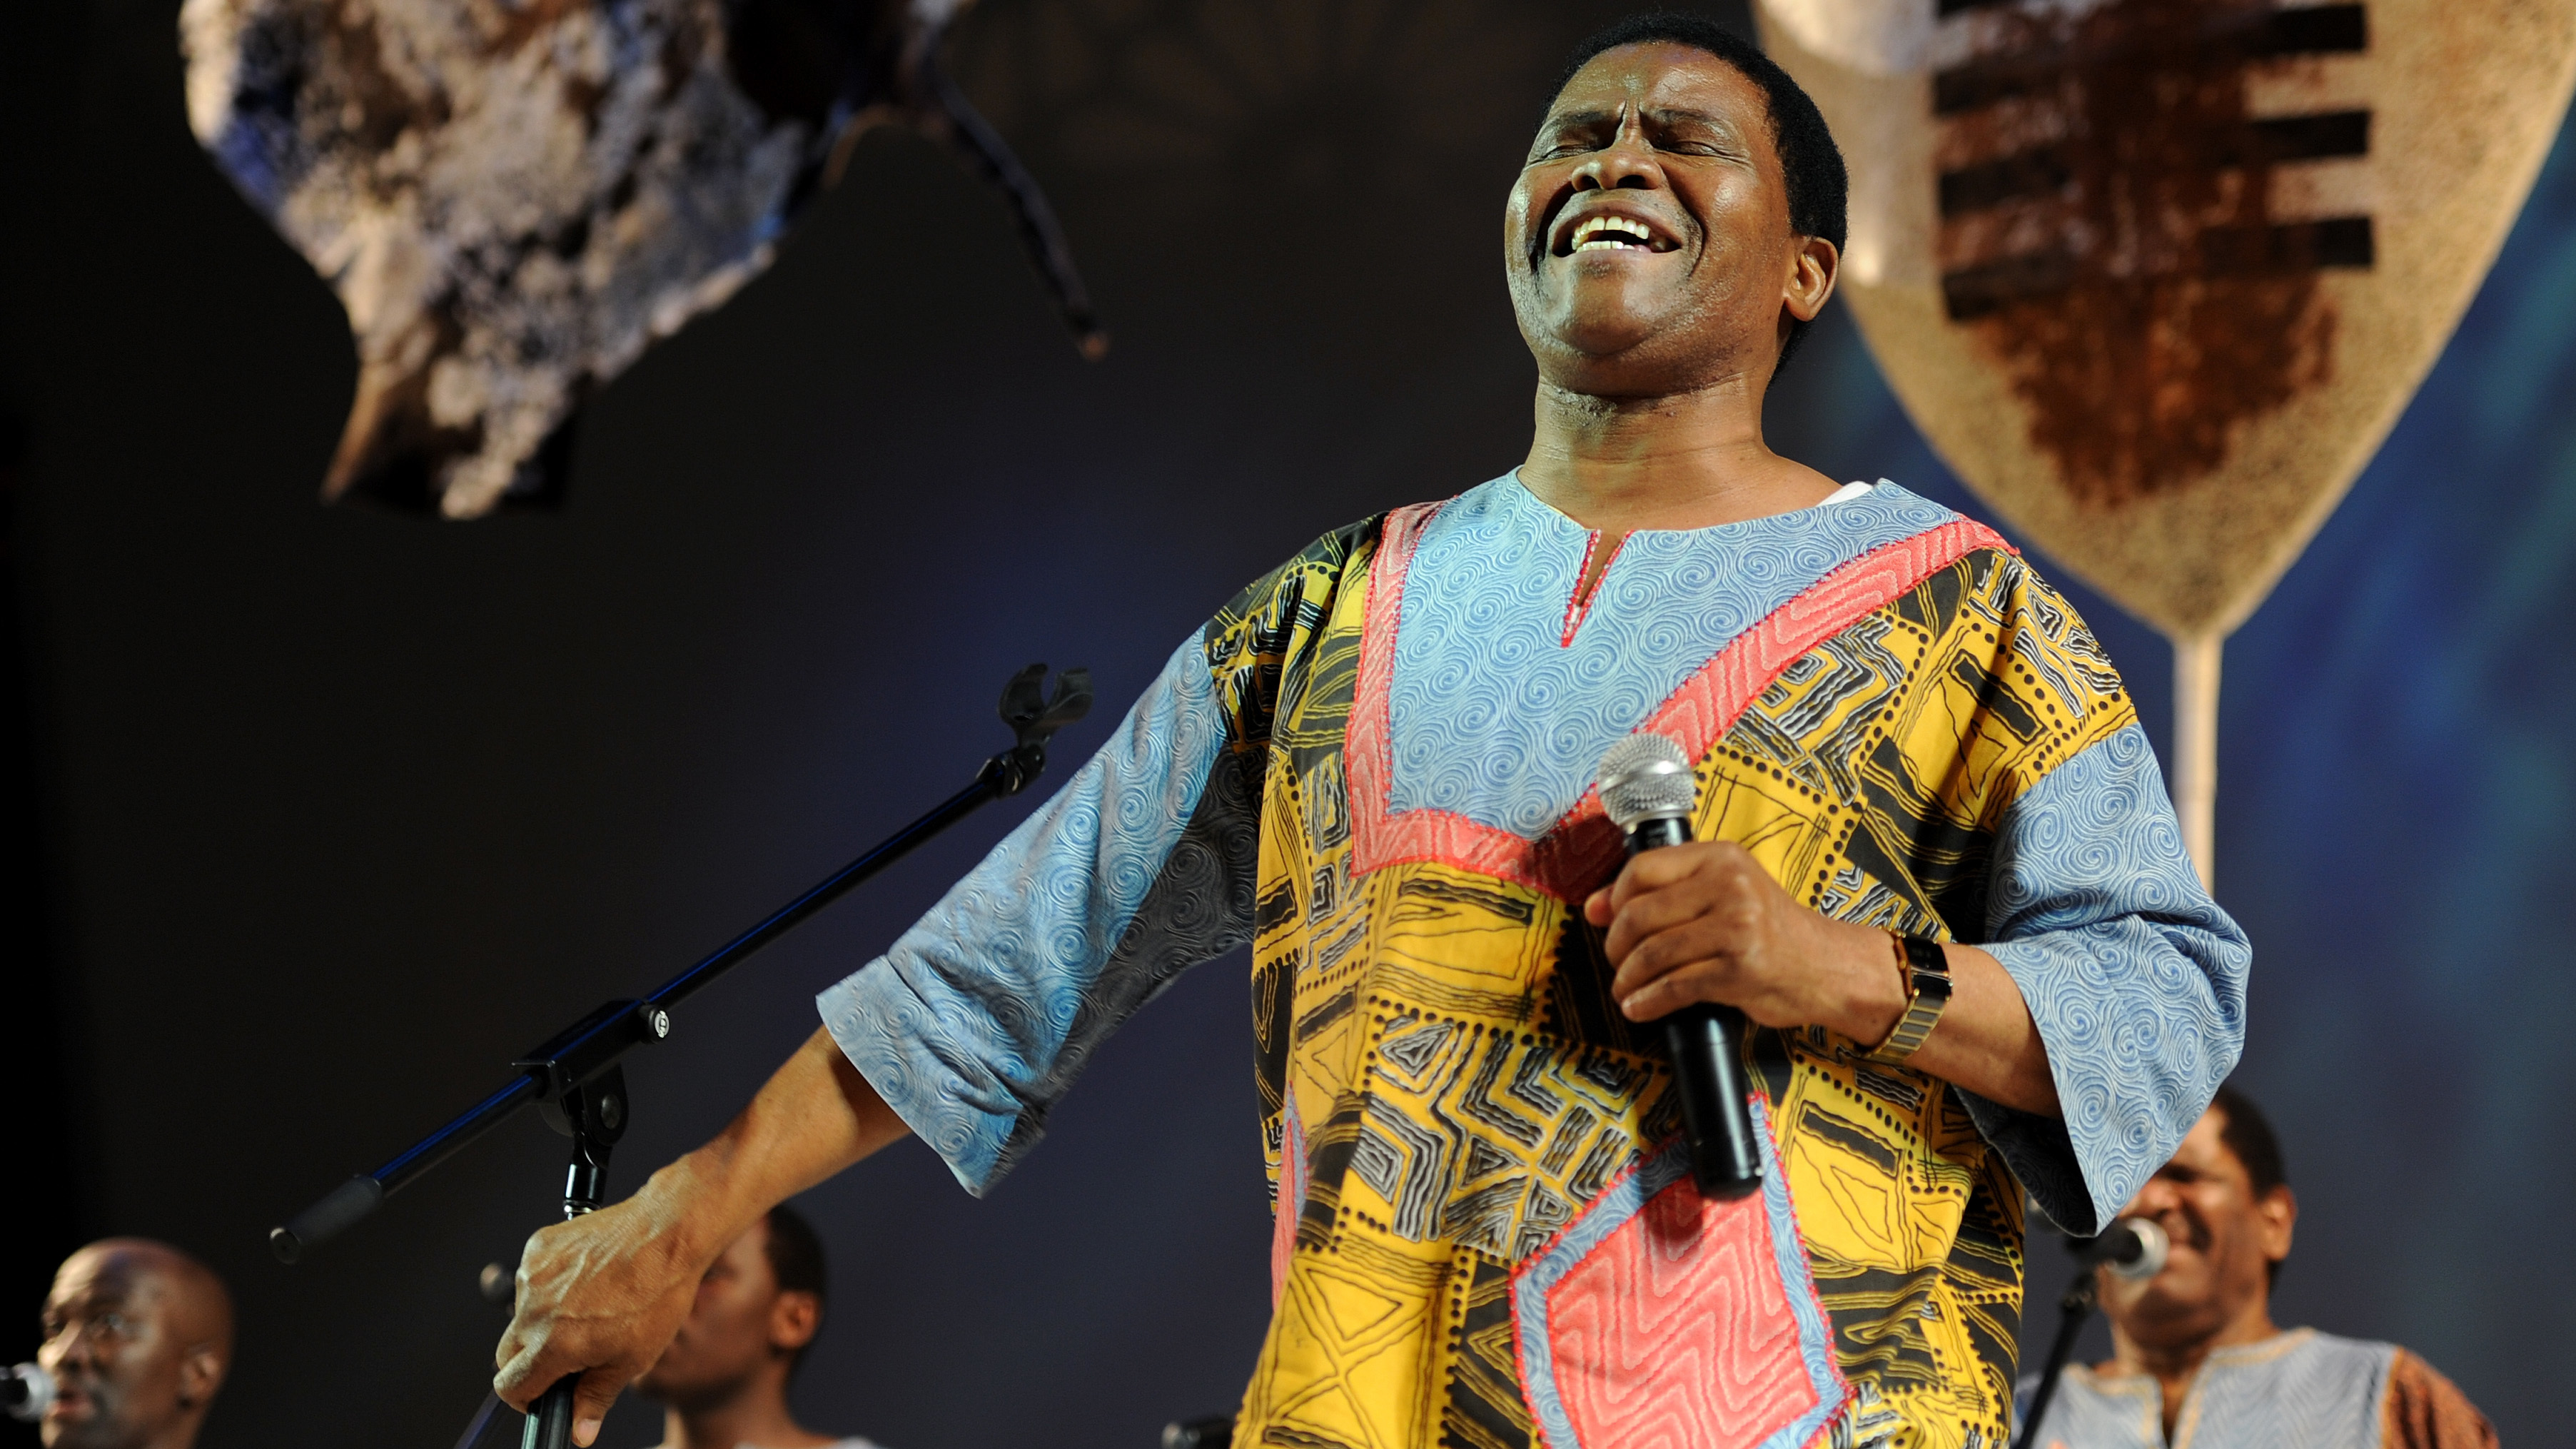 Joseph Shabala leads Ladysmith Black Mambazo in performance in 2011.